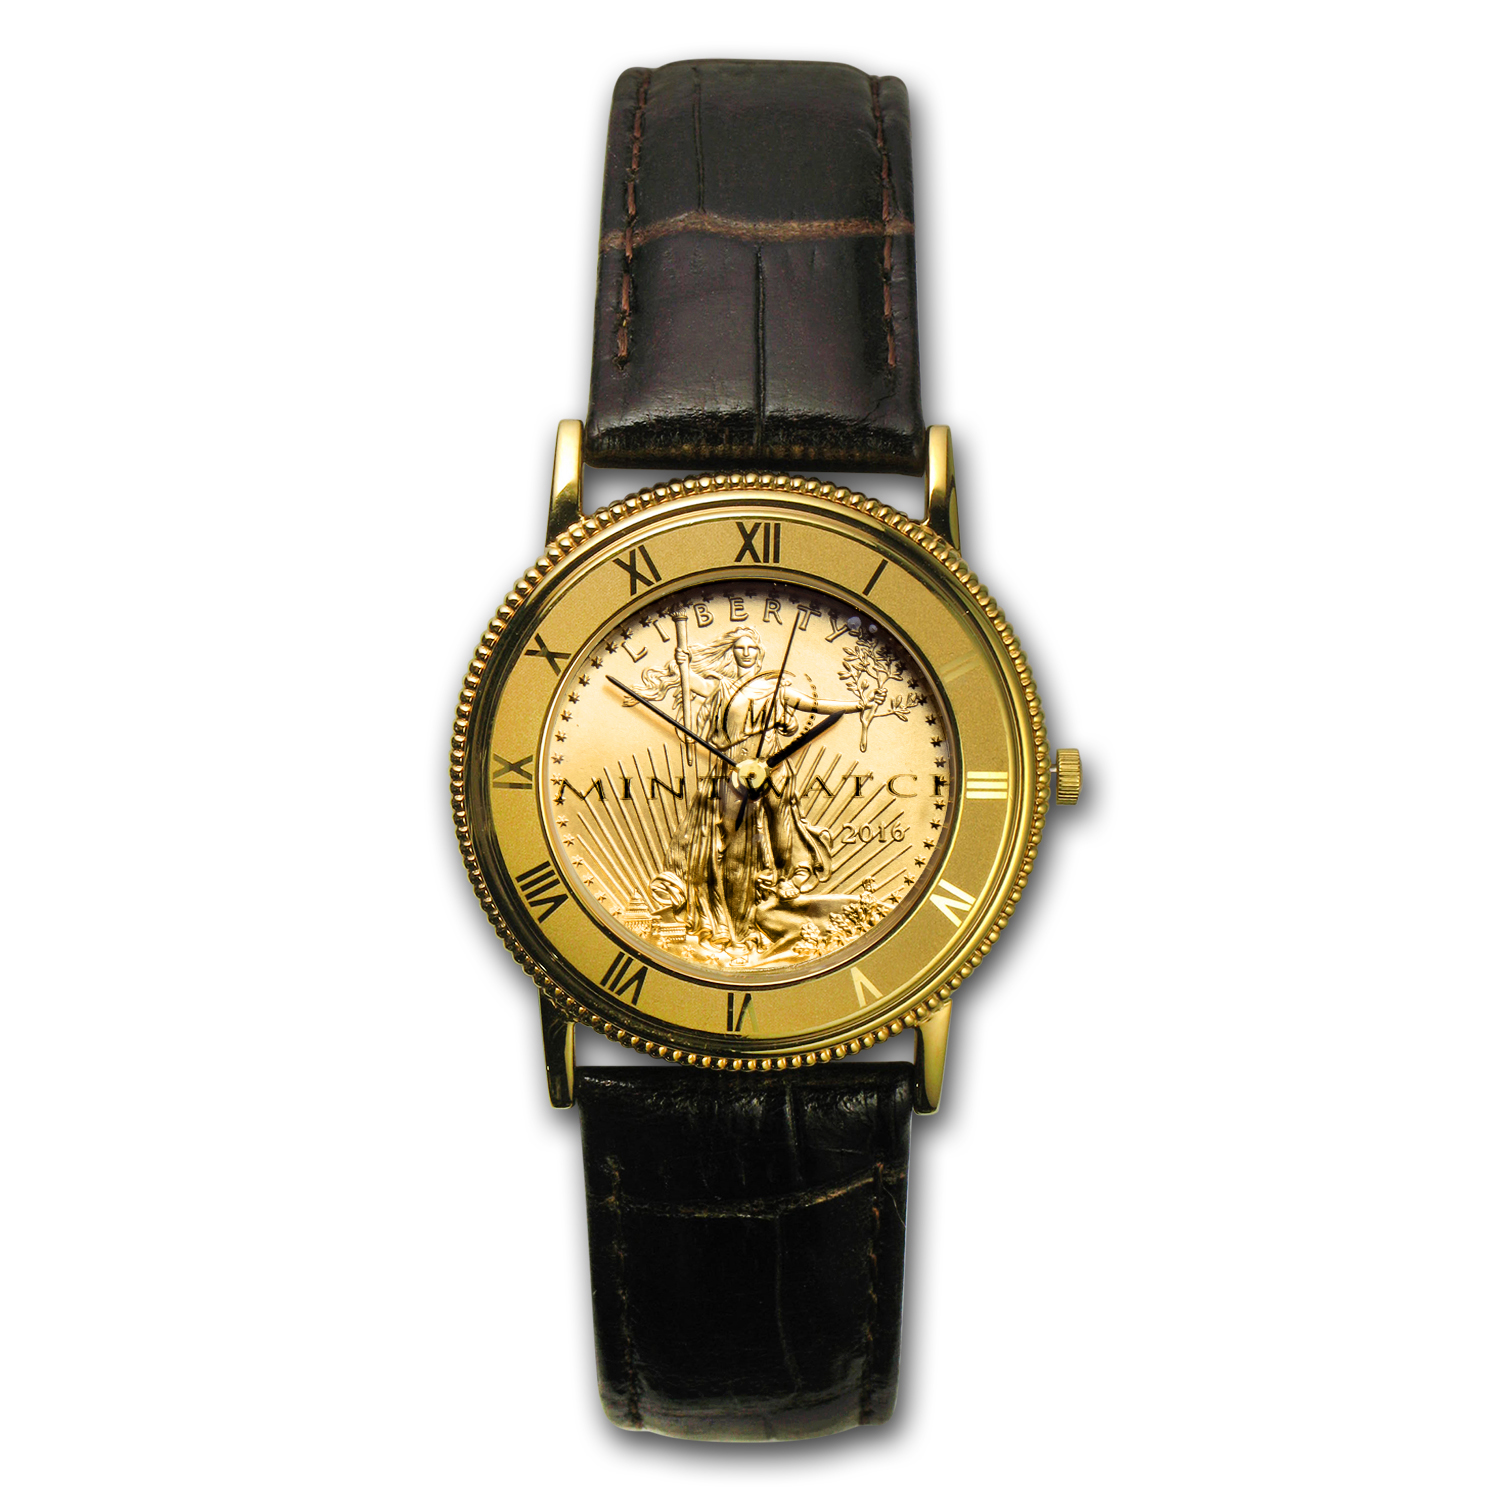 2016 1/4 oz Gold American Eagle Leather Band Watch